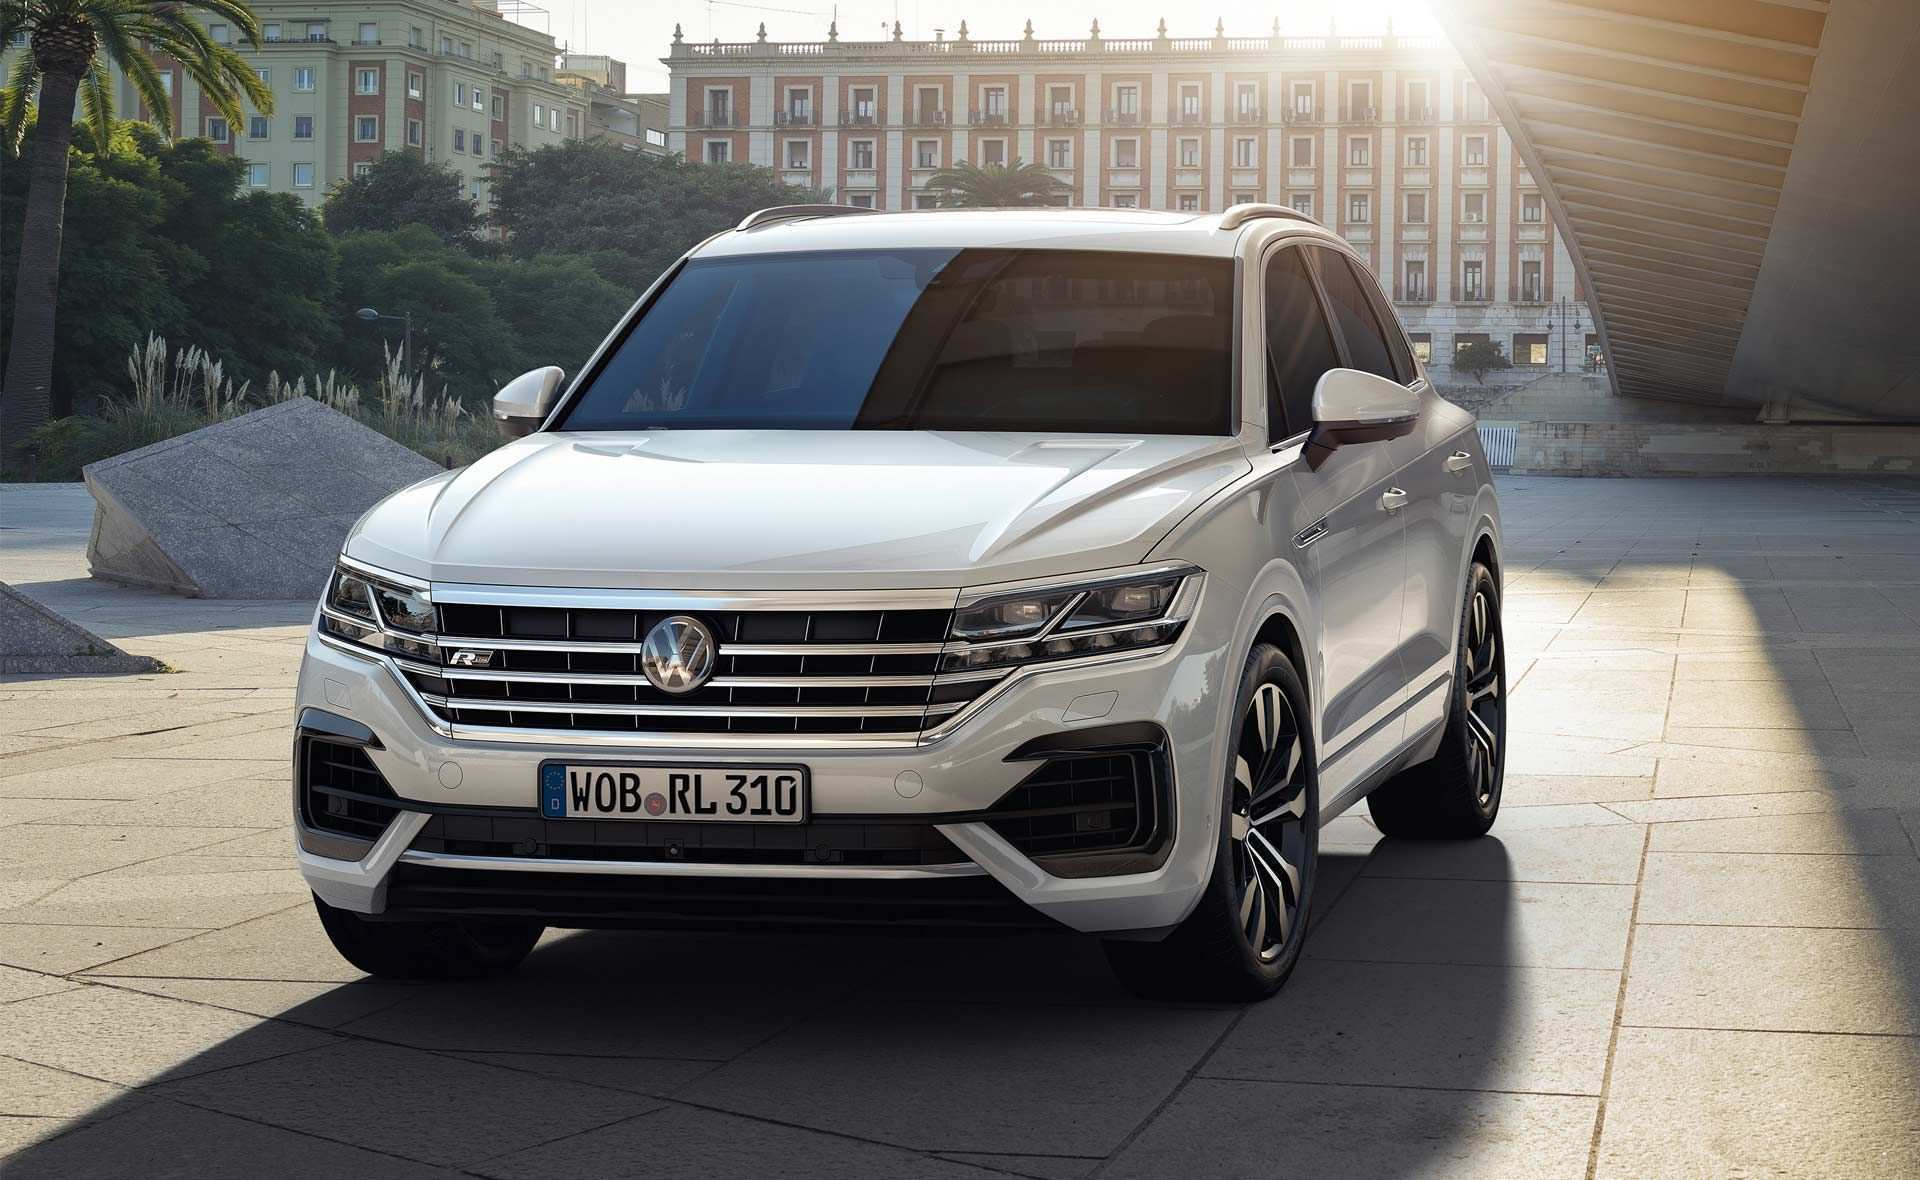 79 Concept of The Volkswagen Touareg 2019 India Release Date New Review with The Volkswagen Touareg 2019 India Release Date